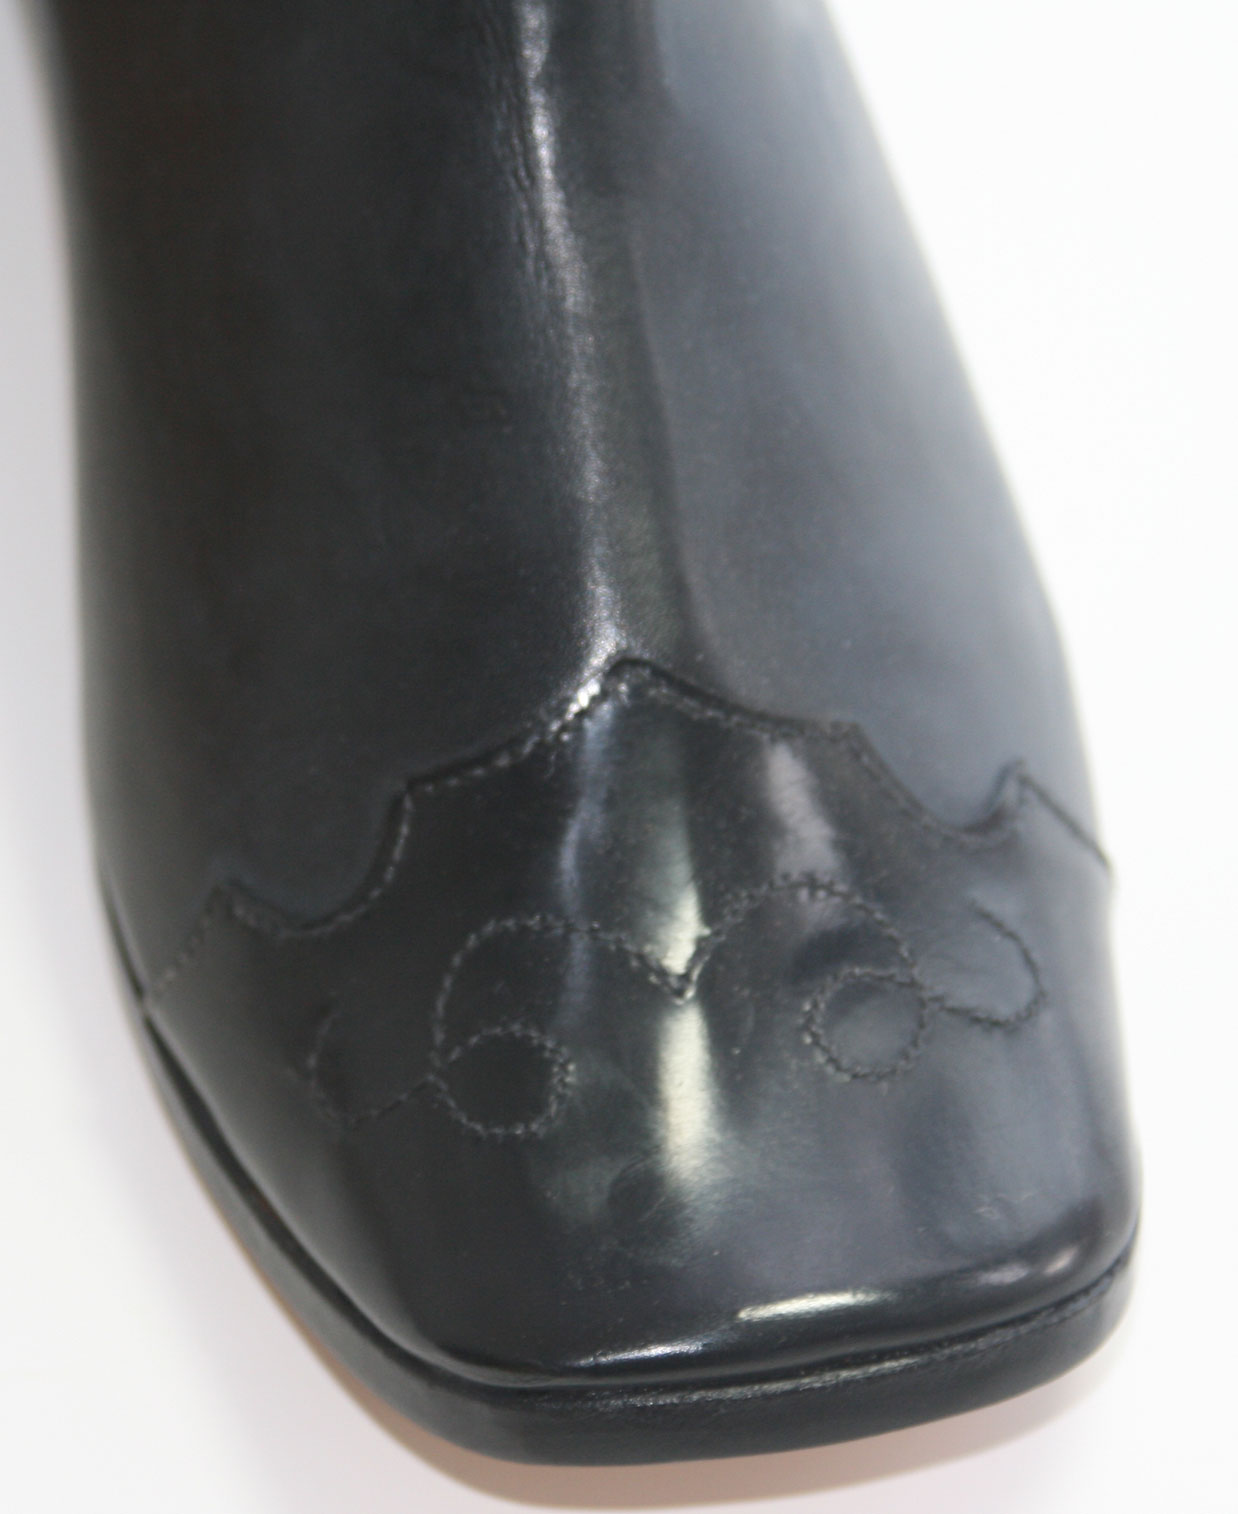 Patent leather toe cap